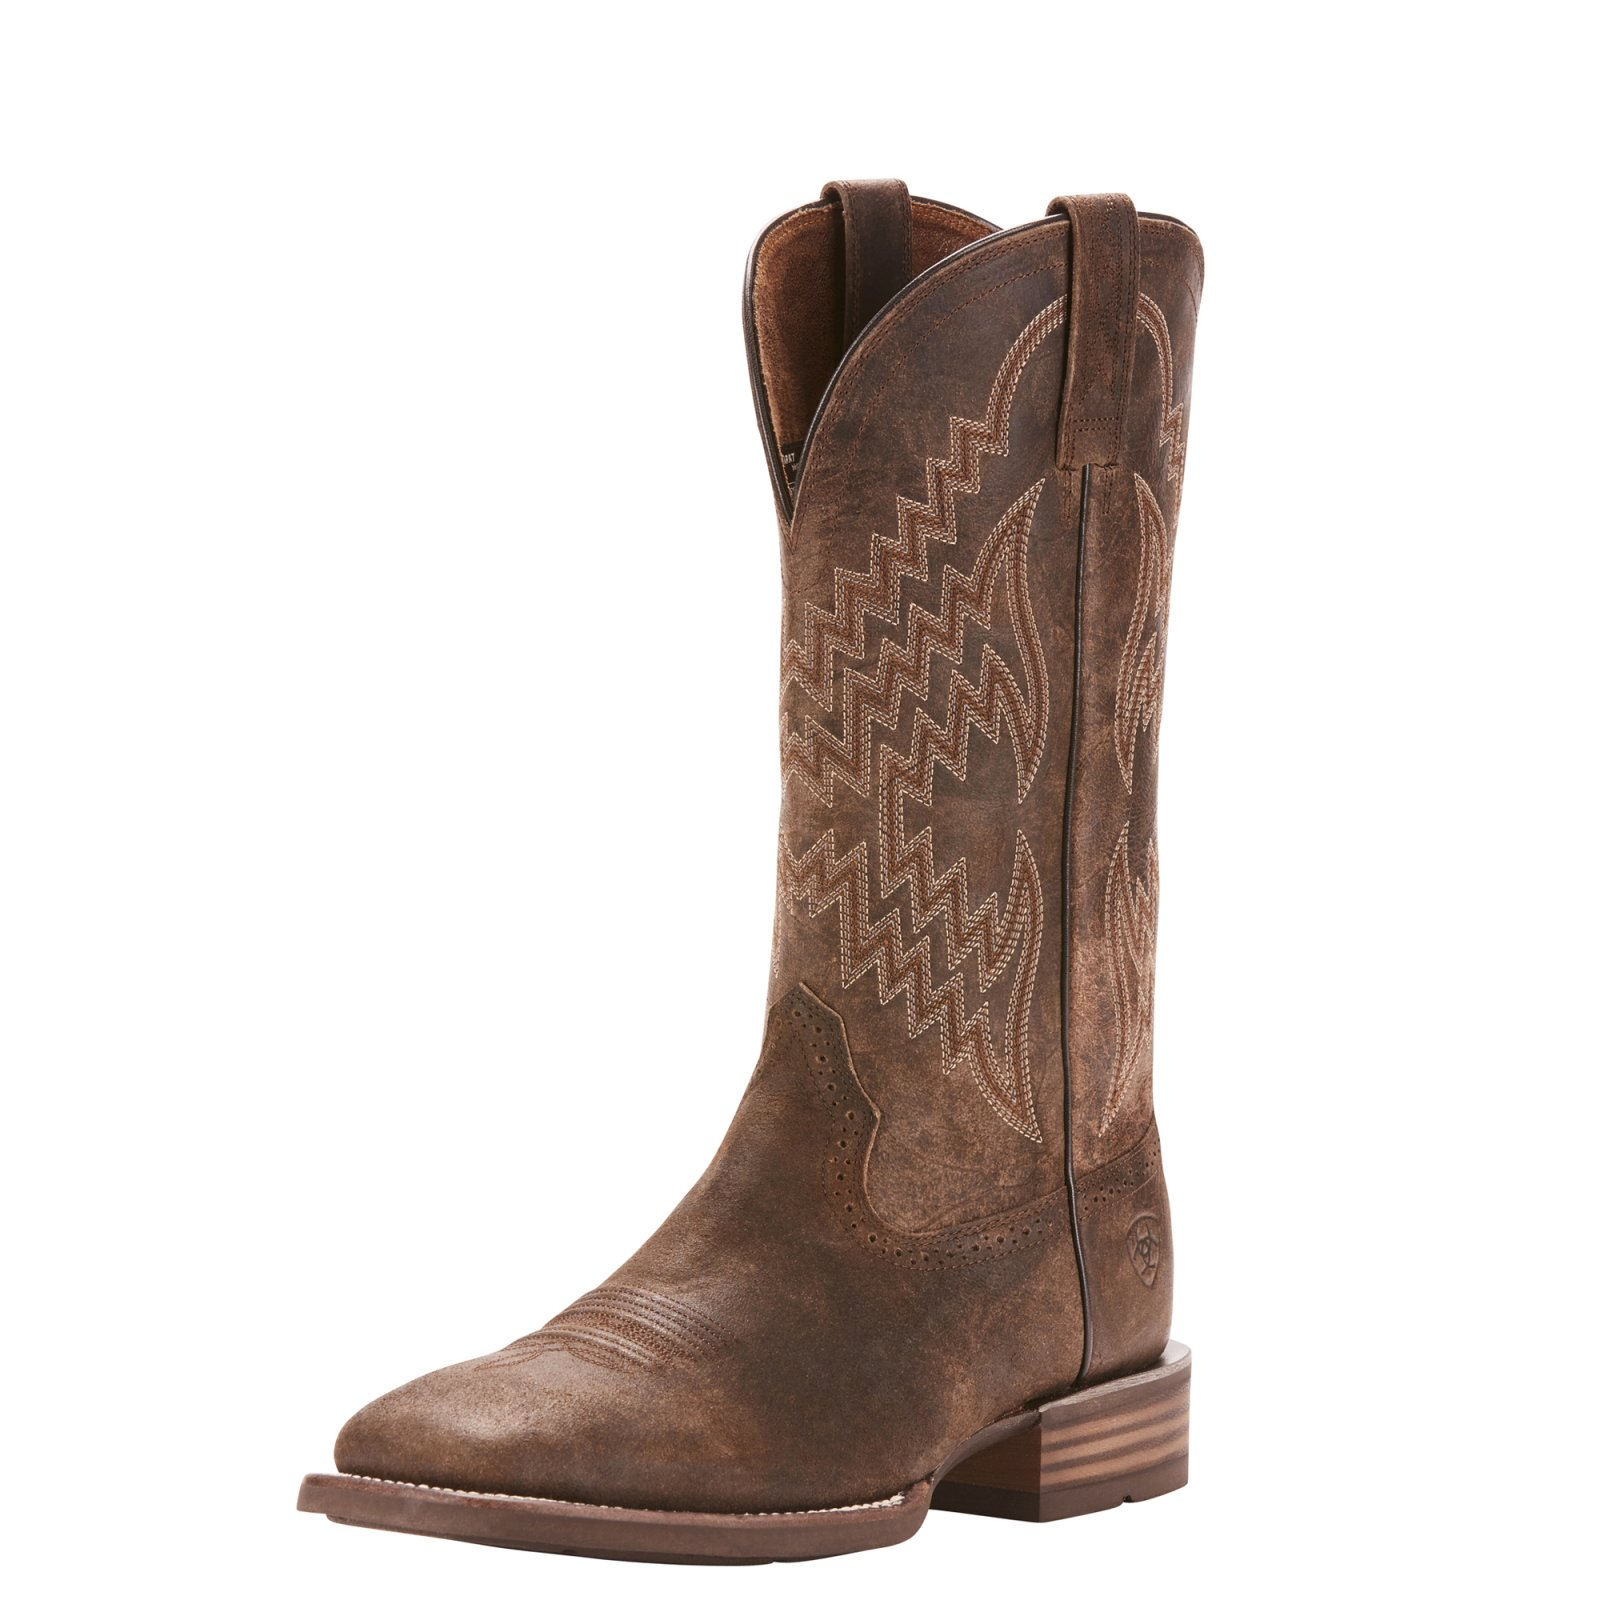 Men's Tycoon Boot from Ariat